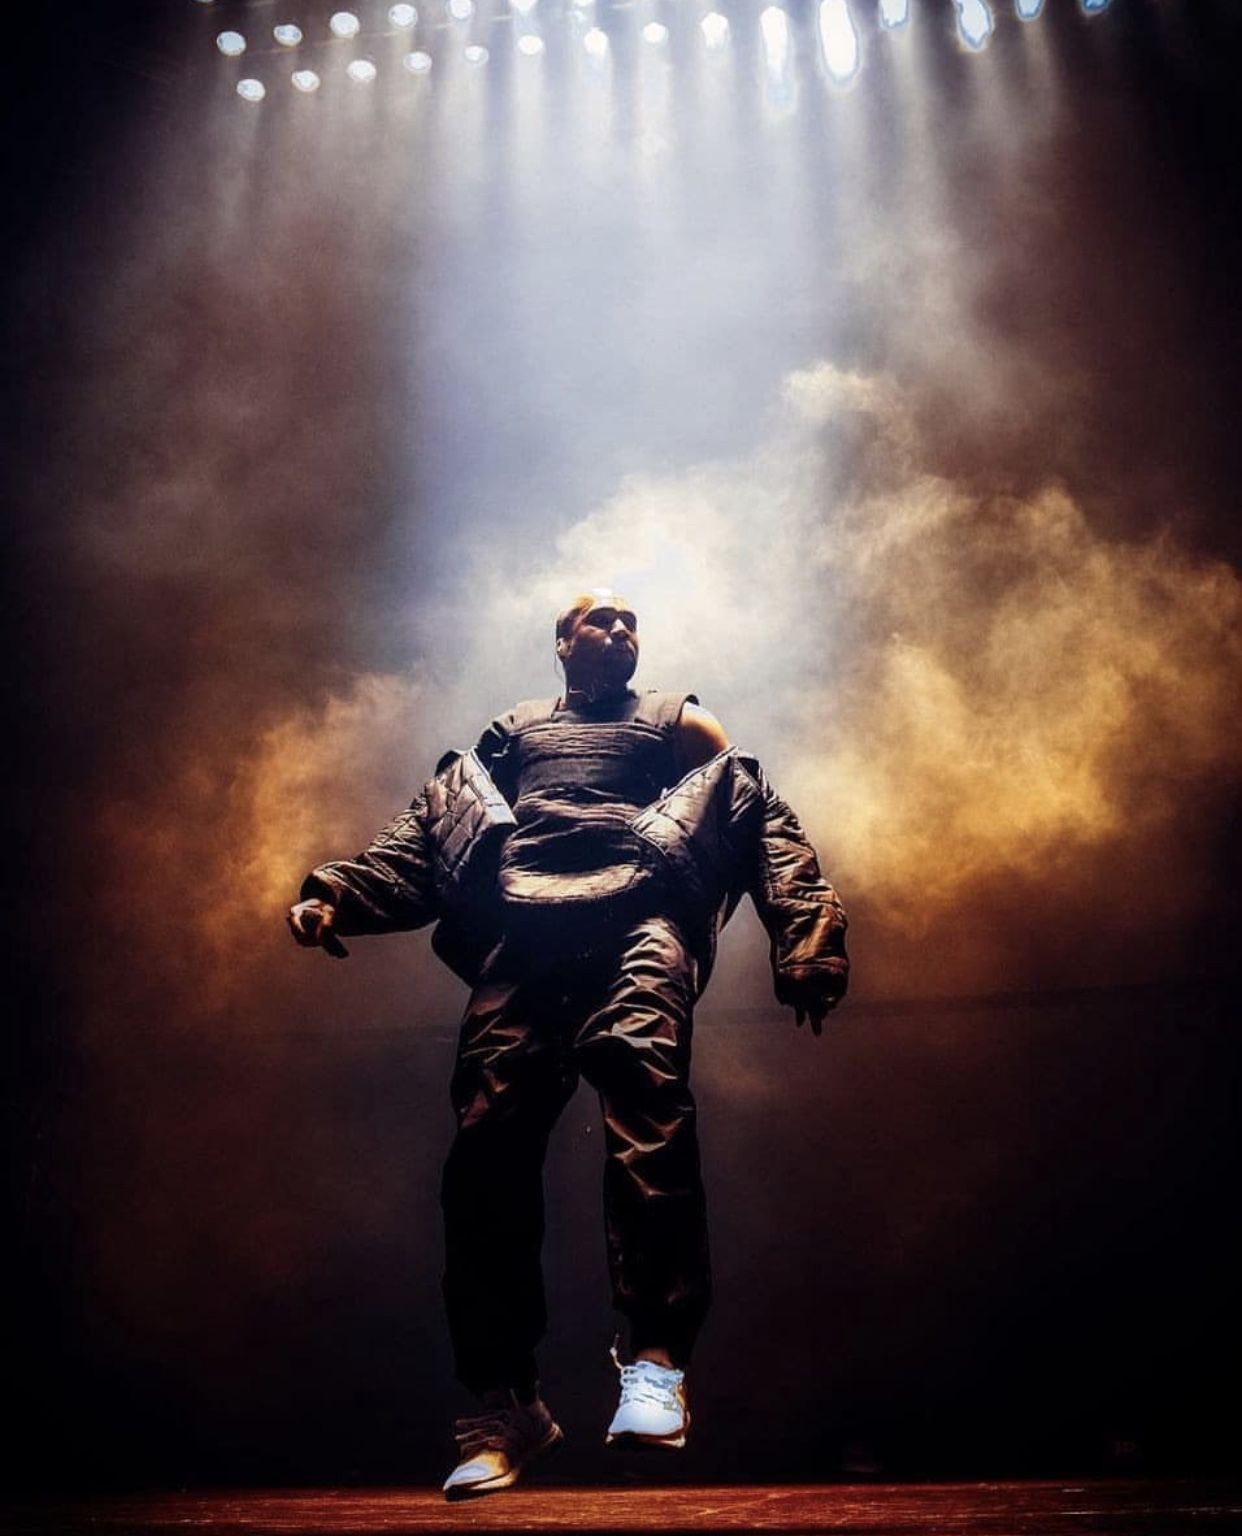 Pin by SWAVEŸ on MR WEST Kanye west wallpaper, Kanye